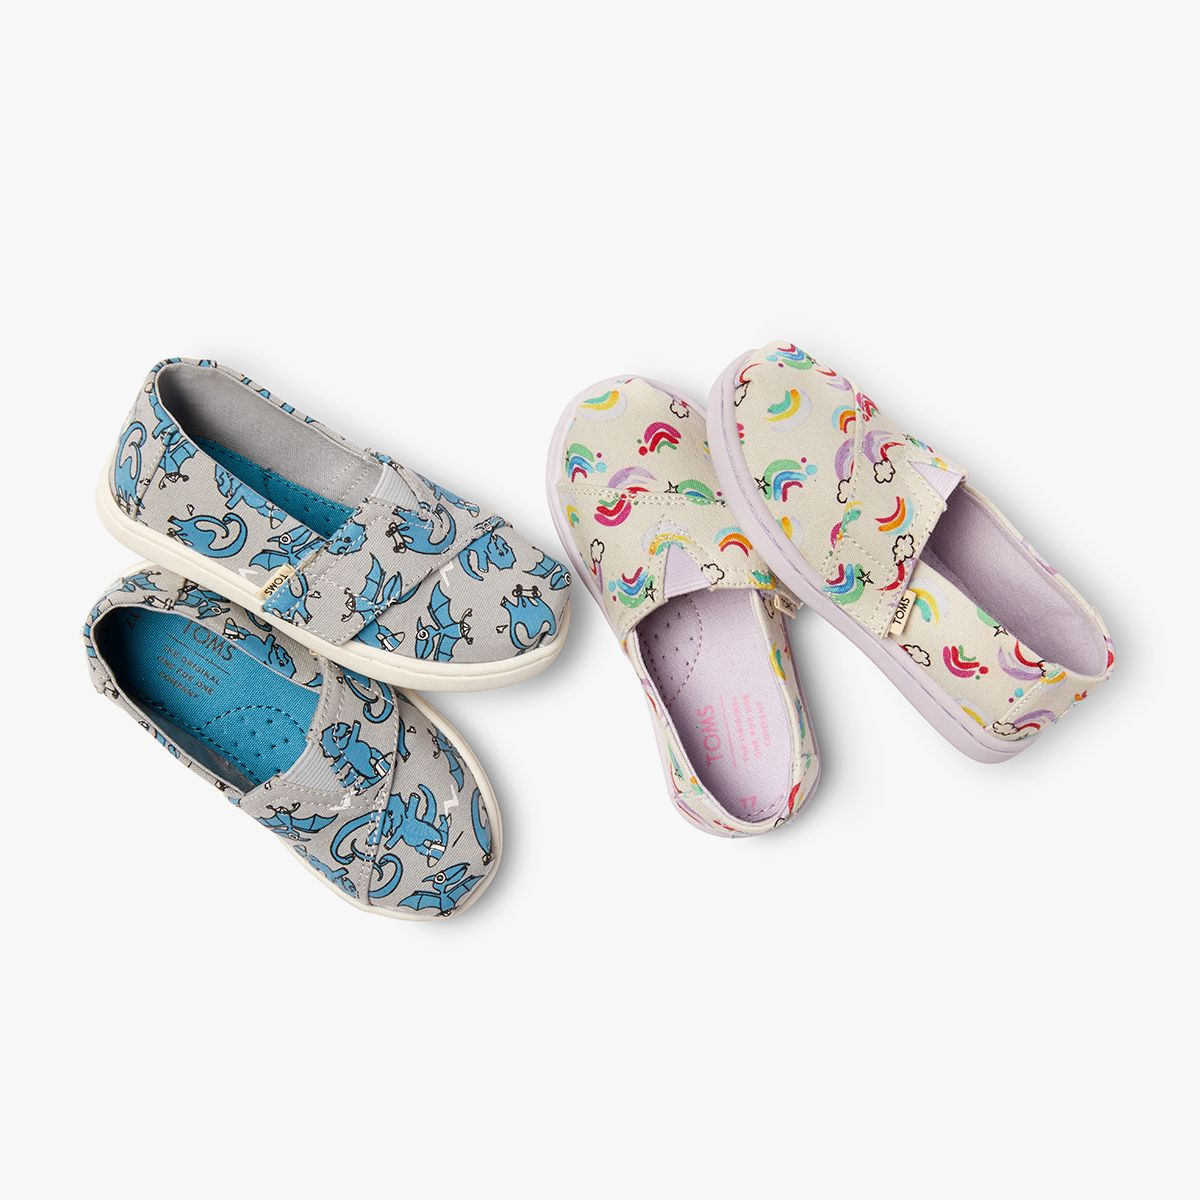 685a370f7f21 Kids Shoes | Childrens Footwear | John Lewis & Partners